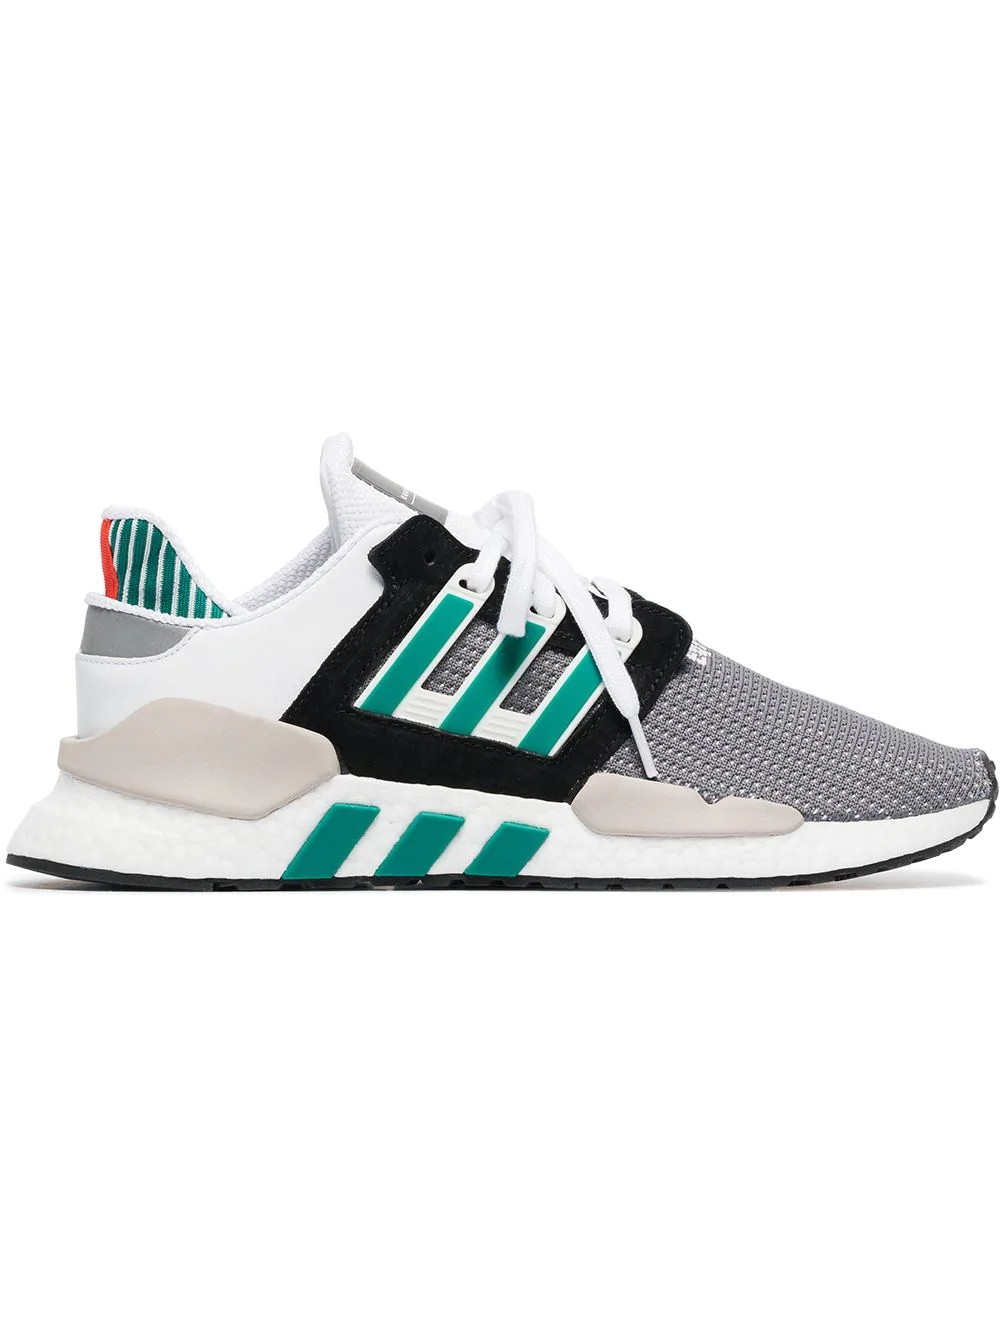 Adidas Originals EQT Equipment Support 91/18 Grises AQ1037